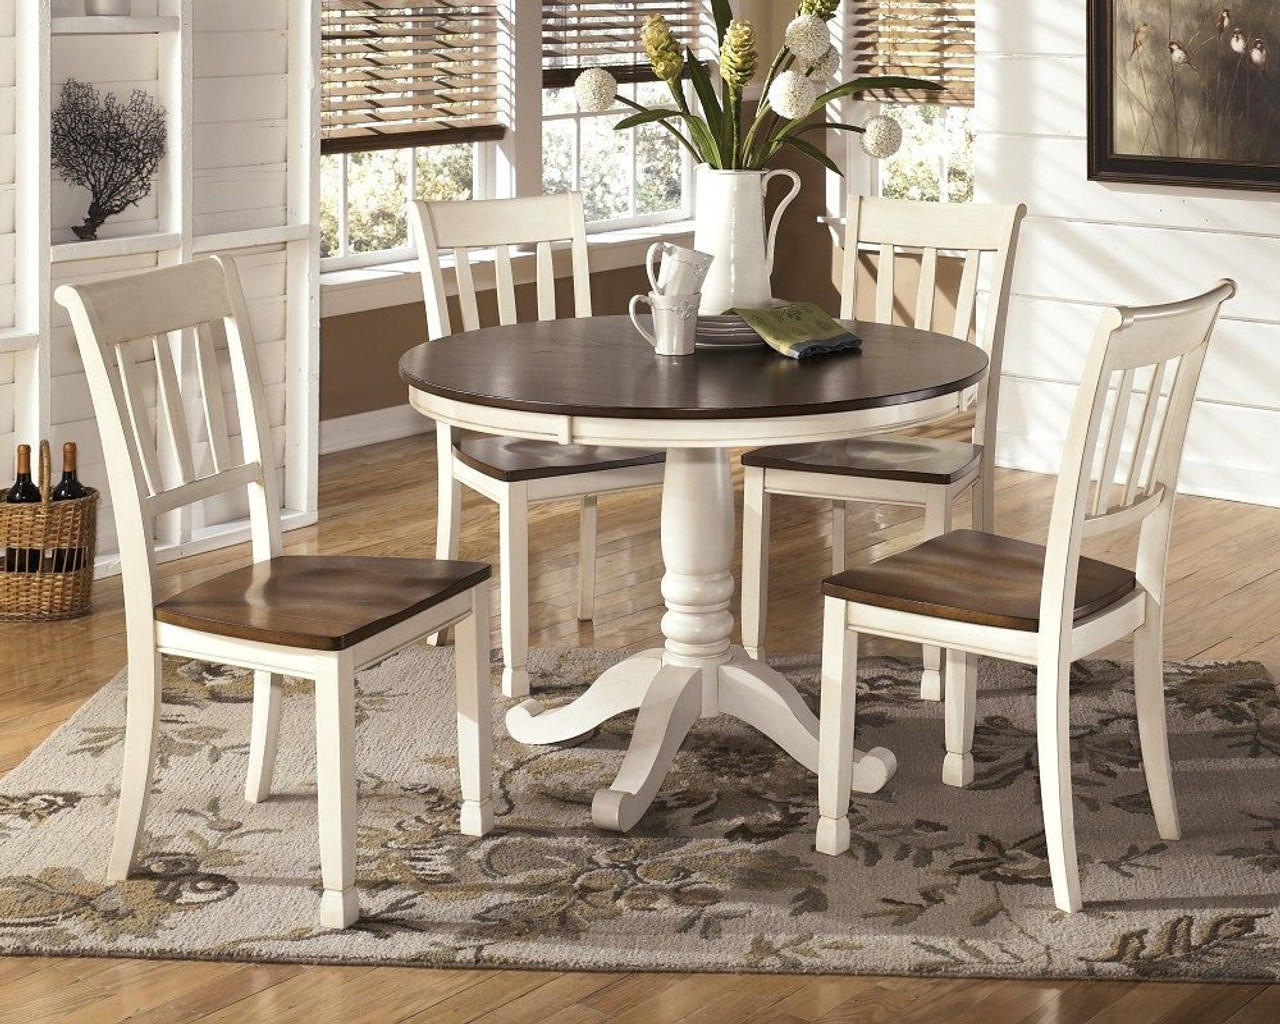 Picture of: The Whitesburg Brown Cottage White 6 Pc Round Dining Room Set Available At Barnett And Swann In Athens Al